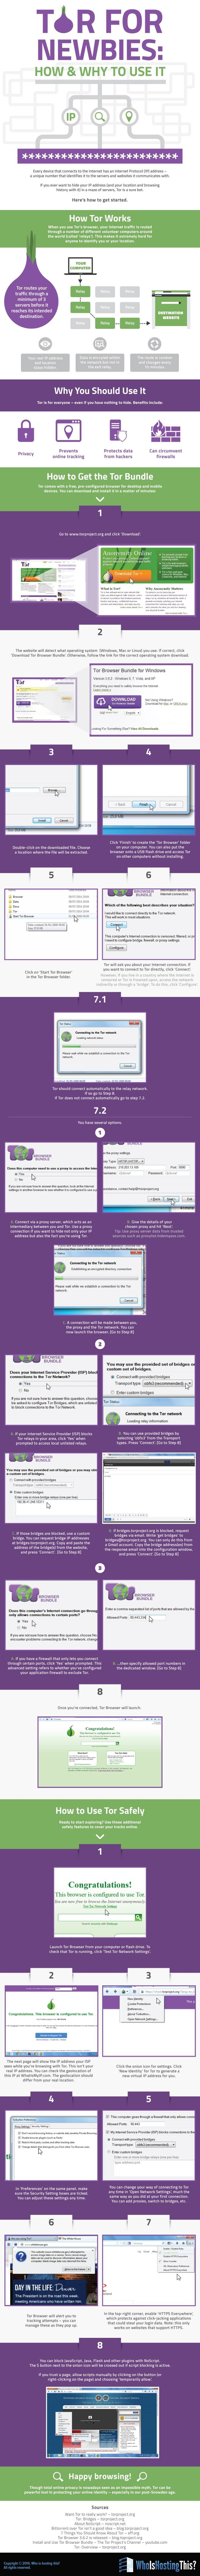 Tor for Newbies: How and Why to Use It #infographic #Browser #Internet #Tor